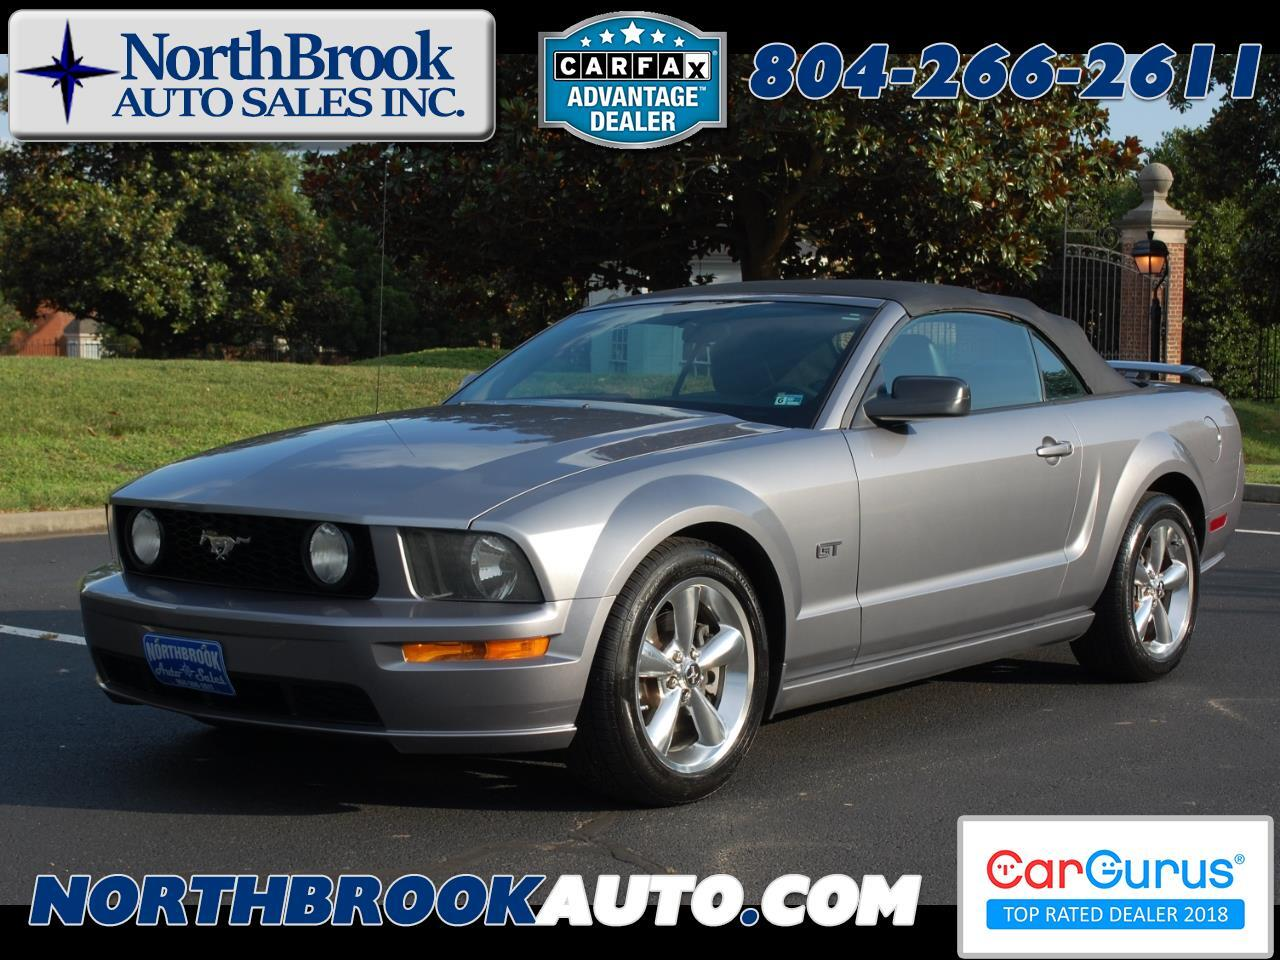 2006 Ford Mustang 2dr Conv GT Deluxe